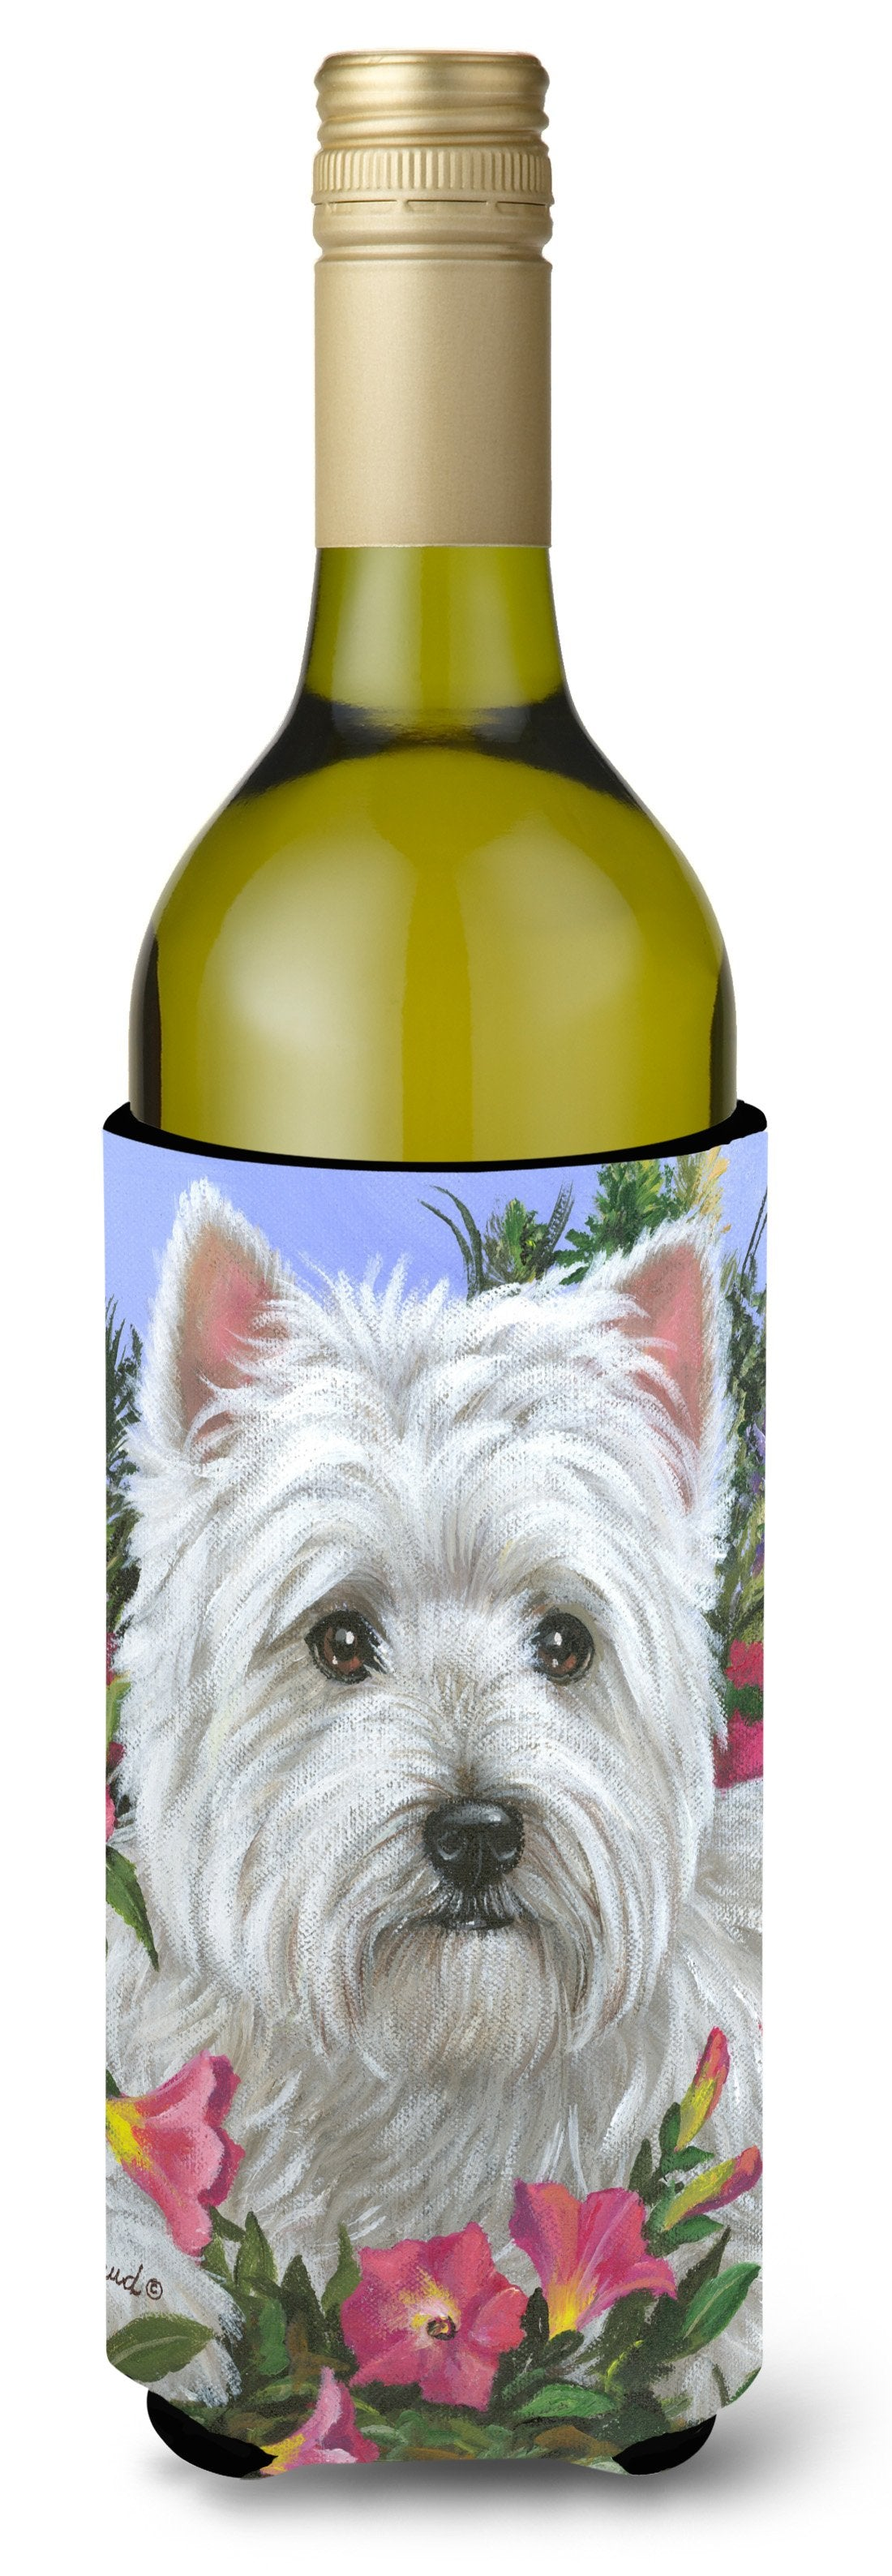 Westie Petunia Wine Bottle Hugger PPP3221LITERK by Caroline's Treasures